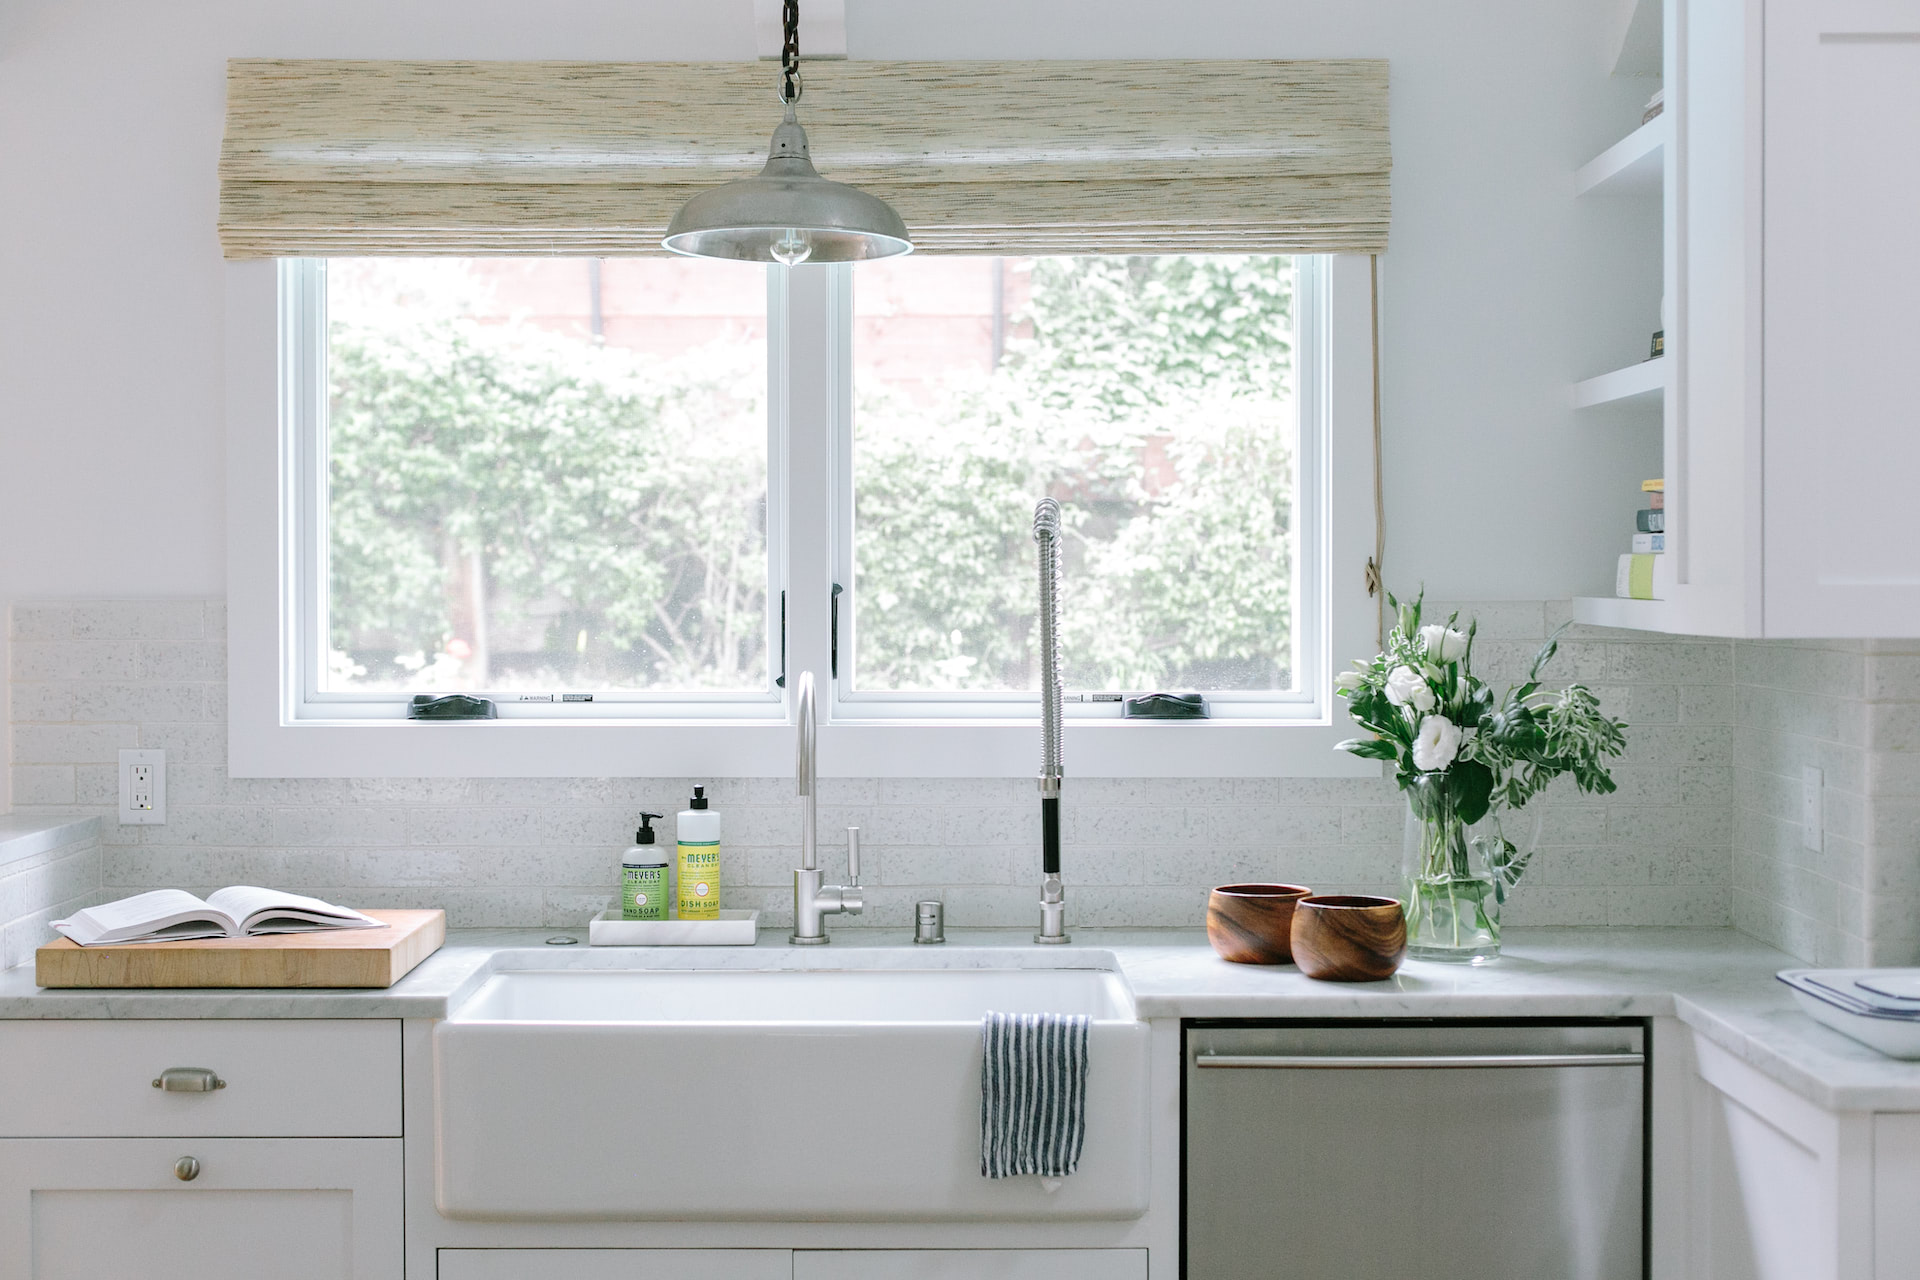 A kitchen with custom woven woods on a window over the sink | Everhem